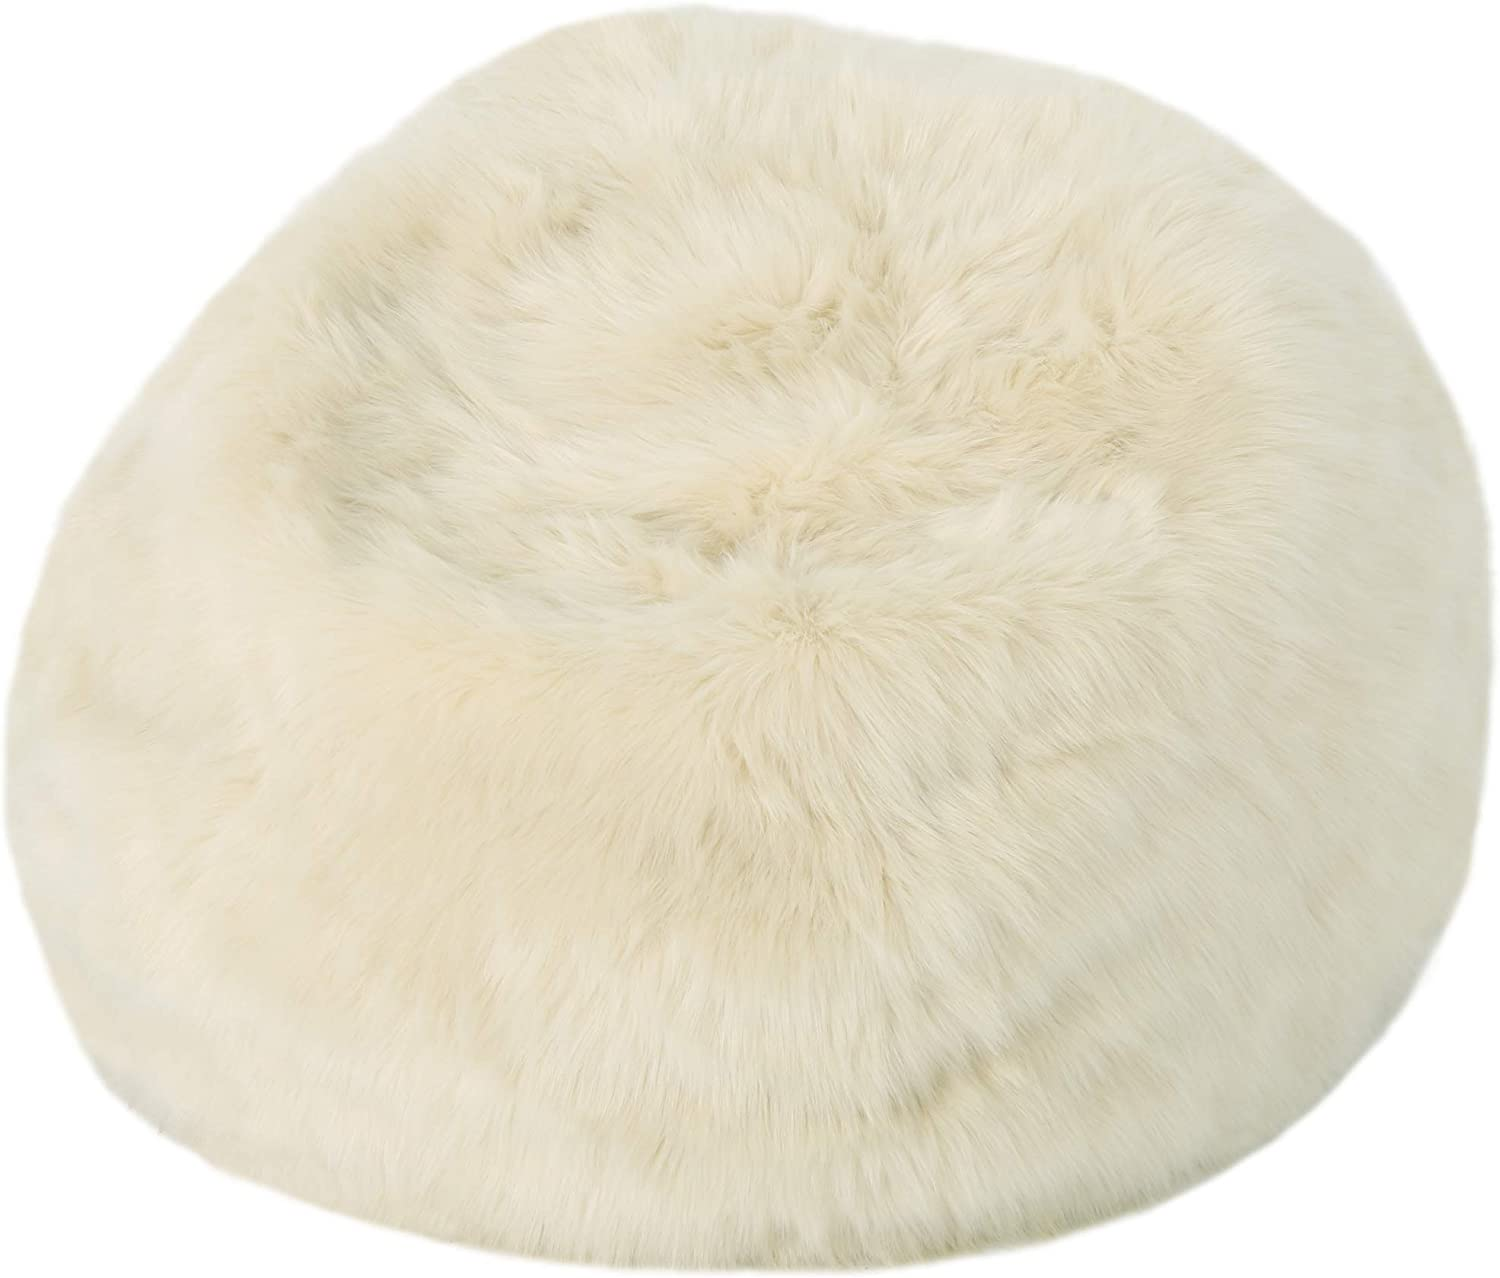 Christopher Knight Home Marcy Modern 3 Foot Faux Fur Bean Bag, Taupe